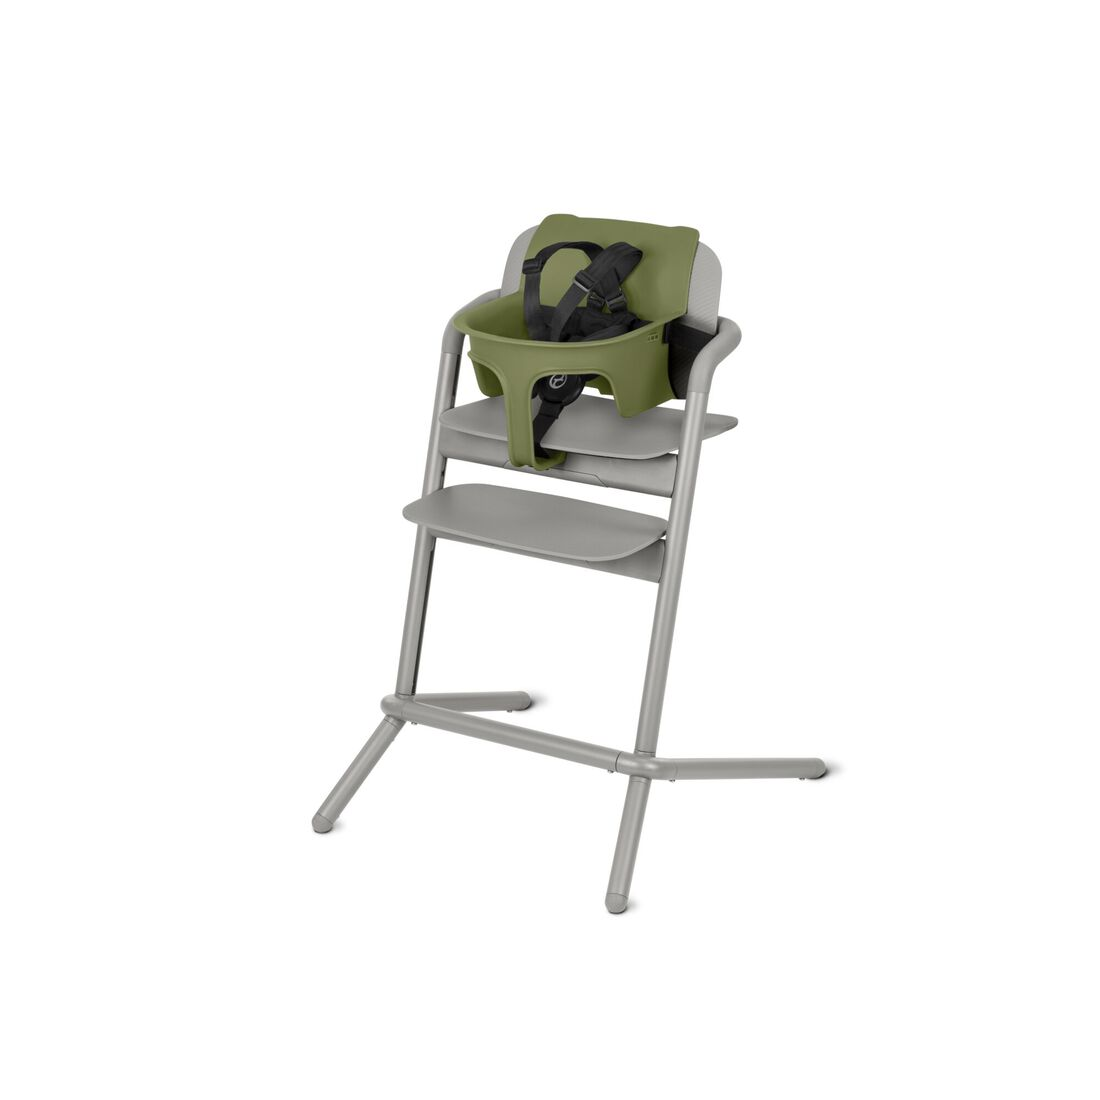 CYBEX Lemo Baby Set 2 - Outback Green in Outback Green large Bild 1